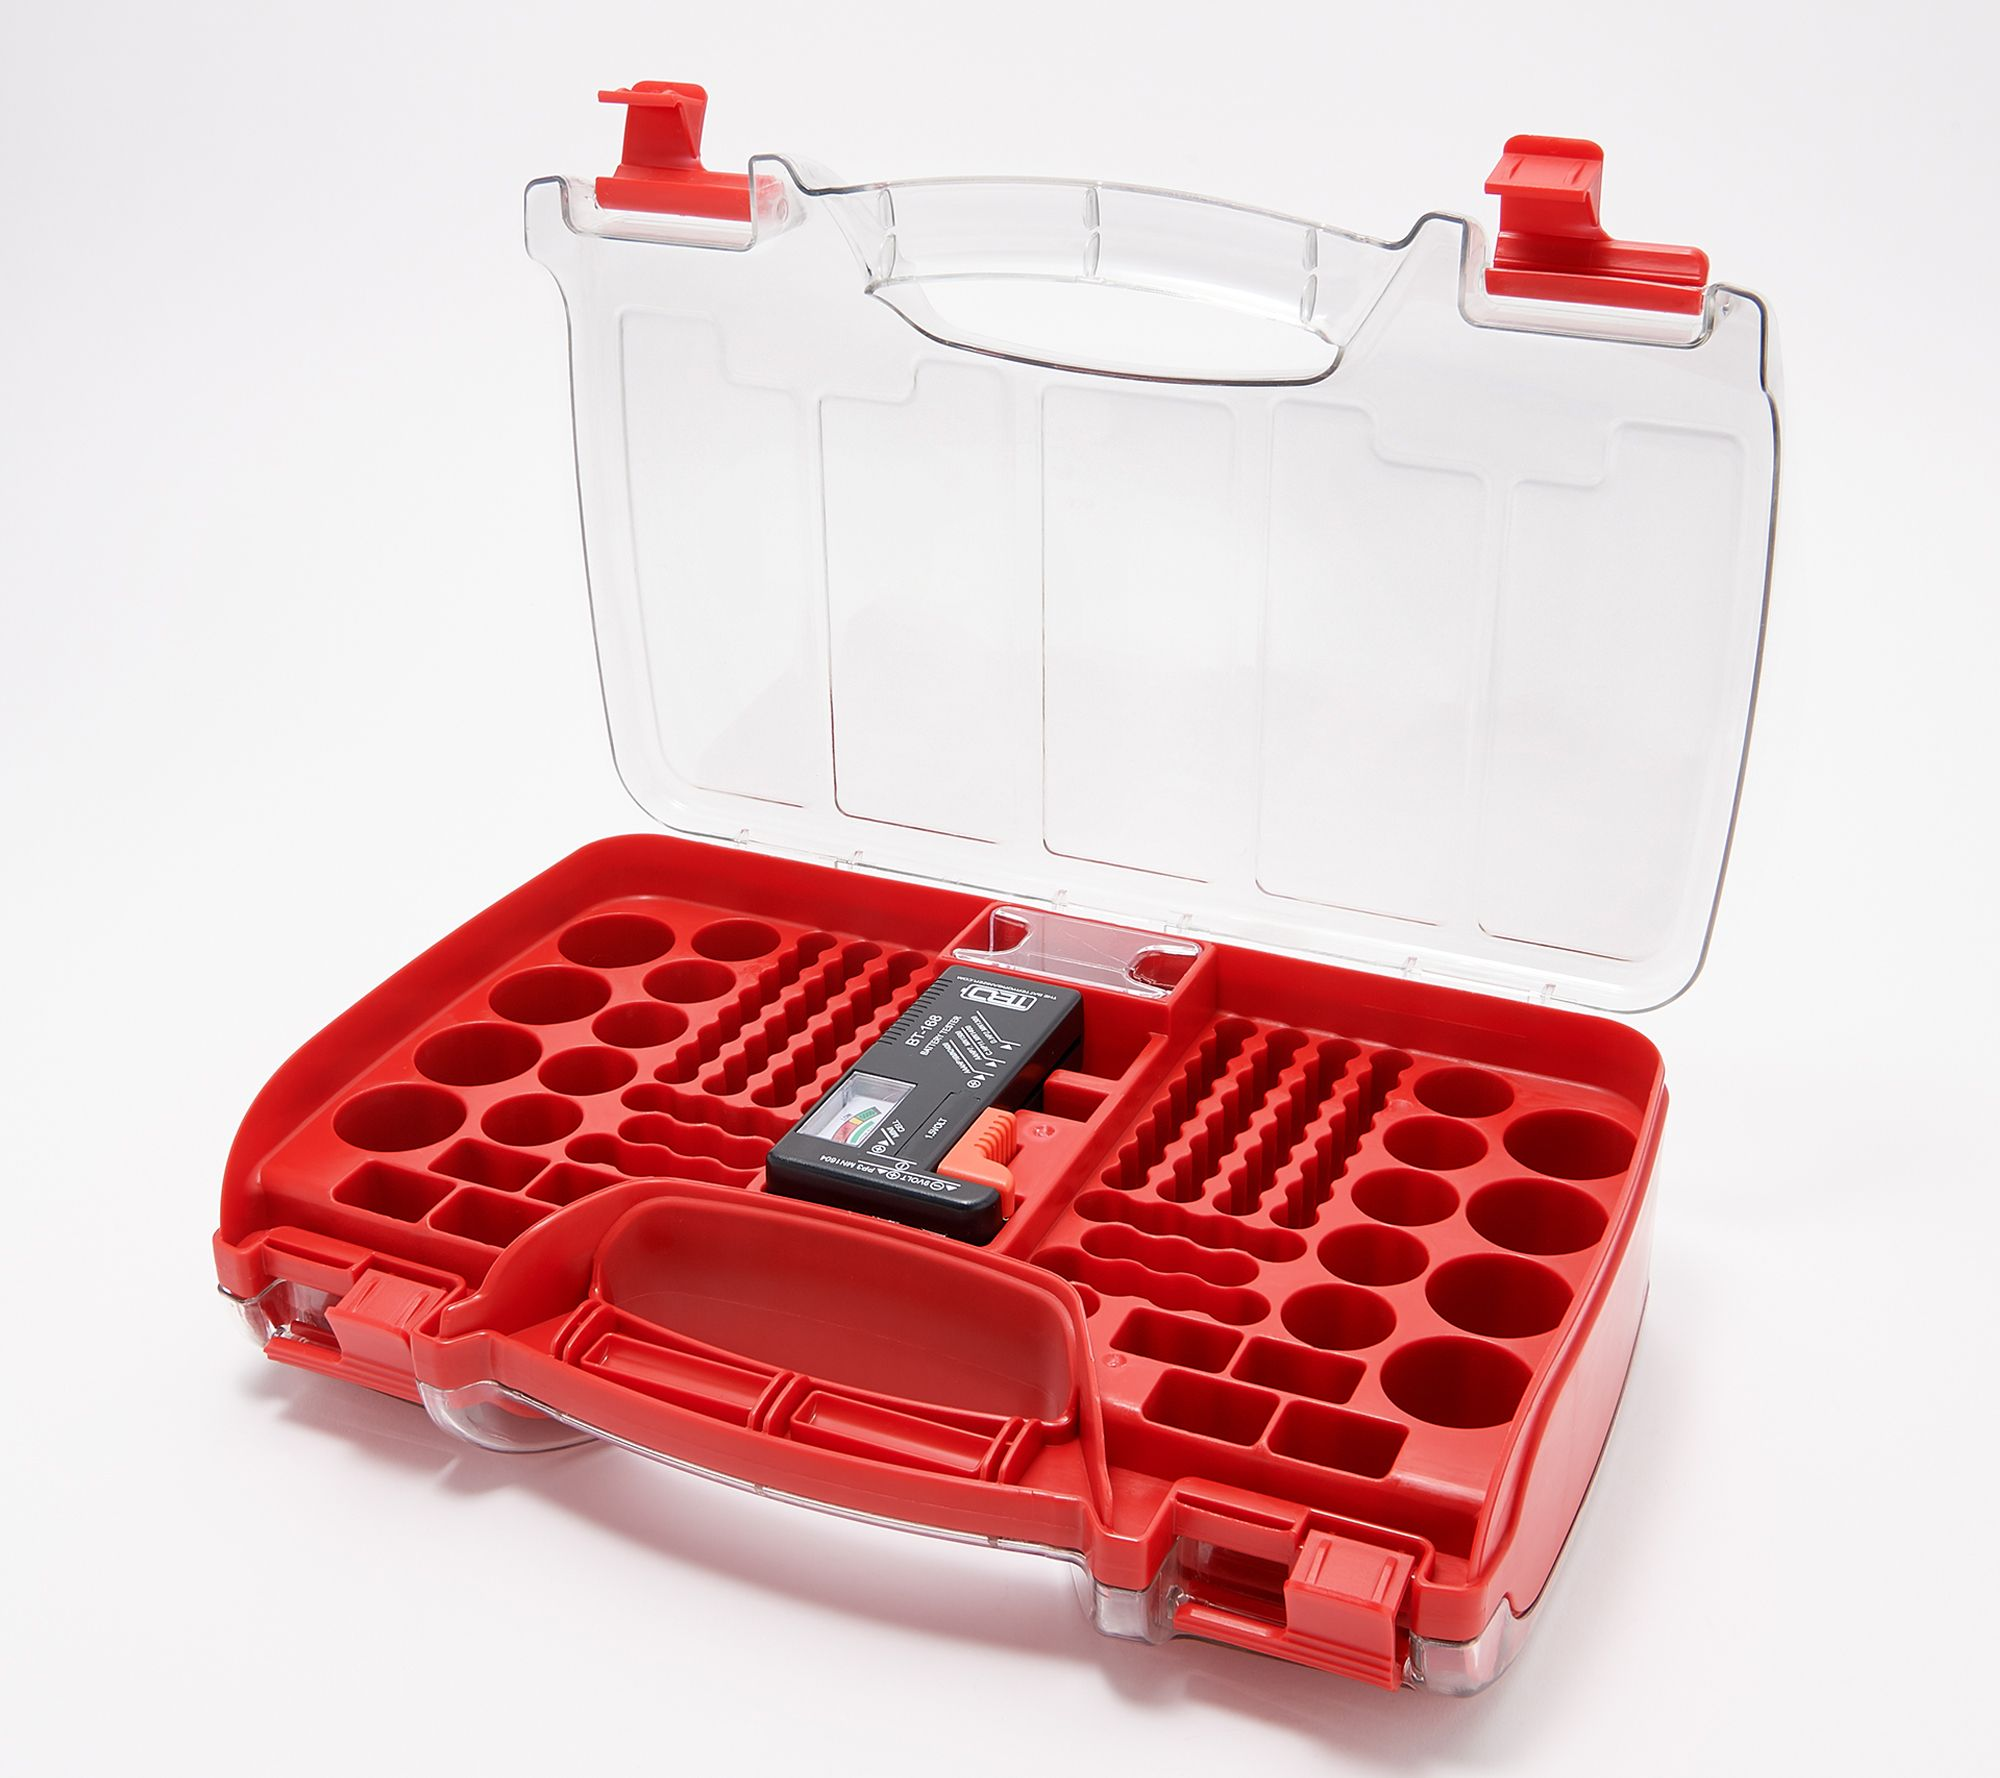 180 Deluxe Battery Organizer Storage Case W Battery Tester Qvc Com